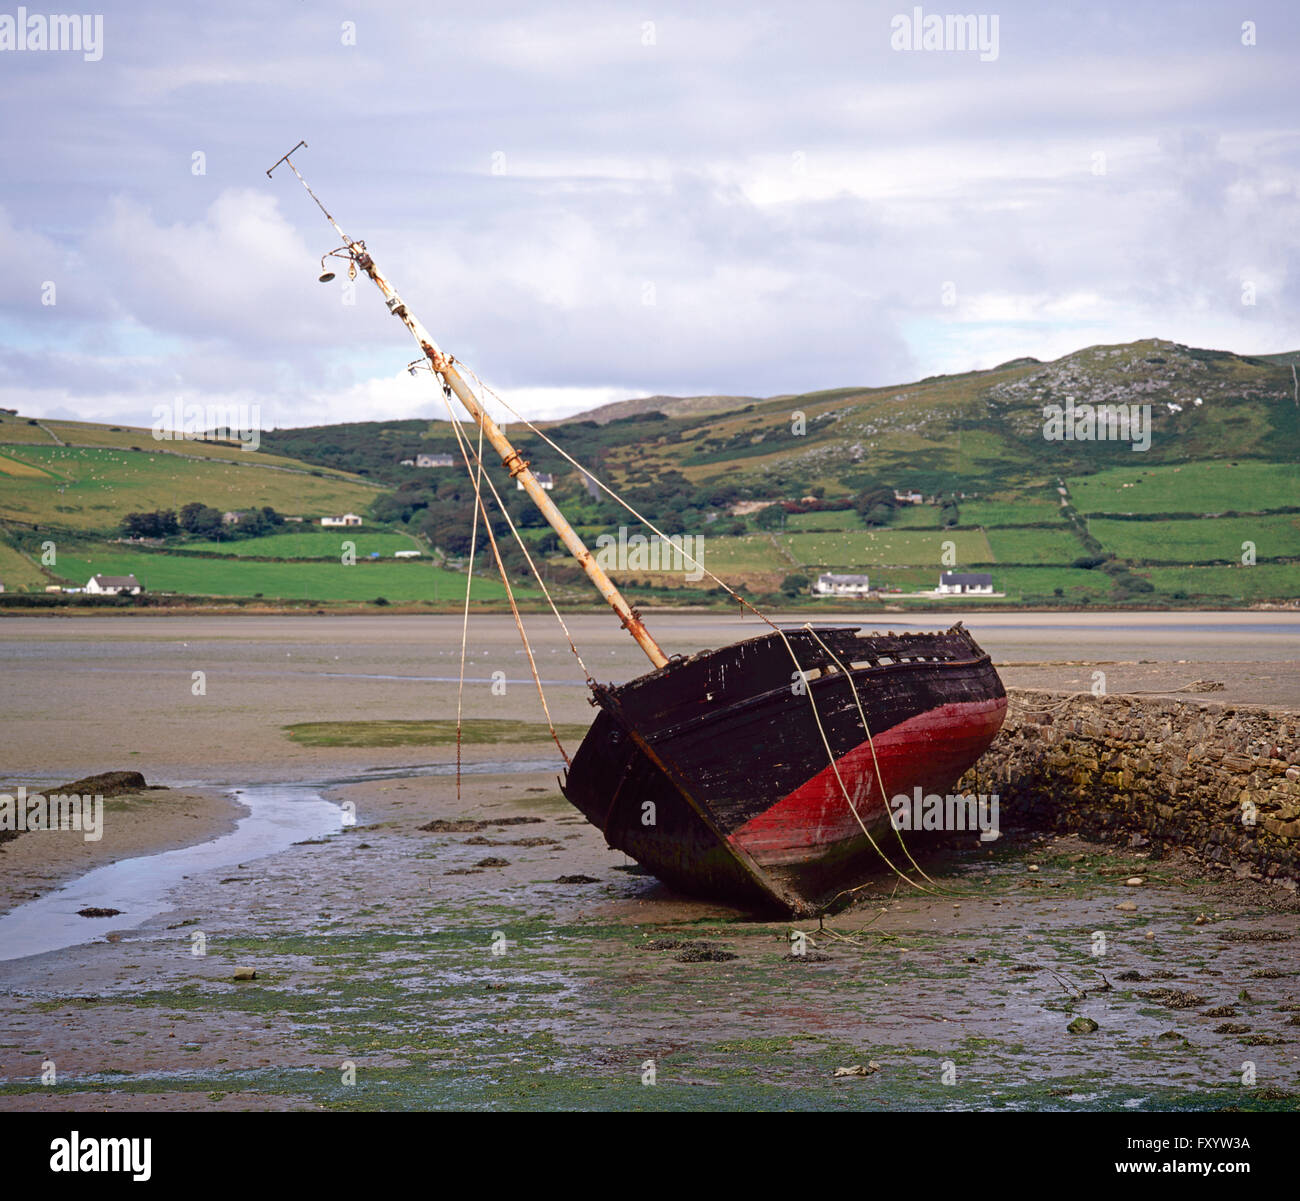 Old fishing boat in Dunfanaghy harbour, County Donegal, Ireland - Stock Image